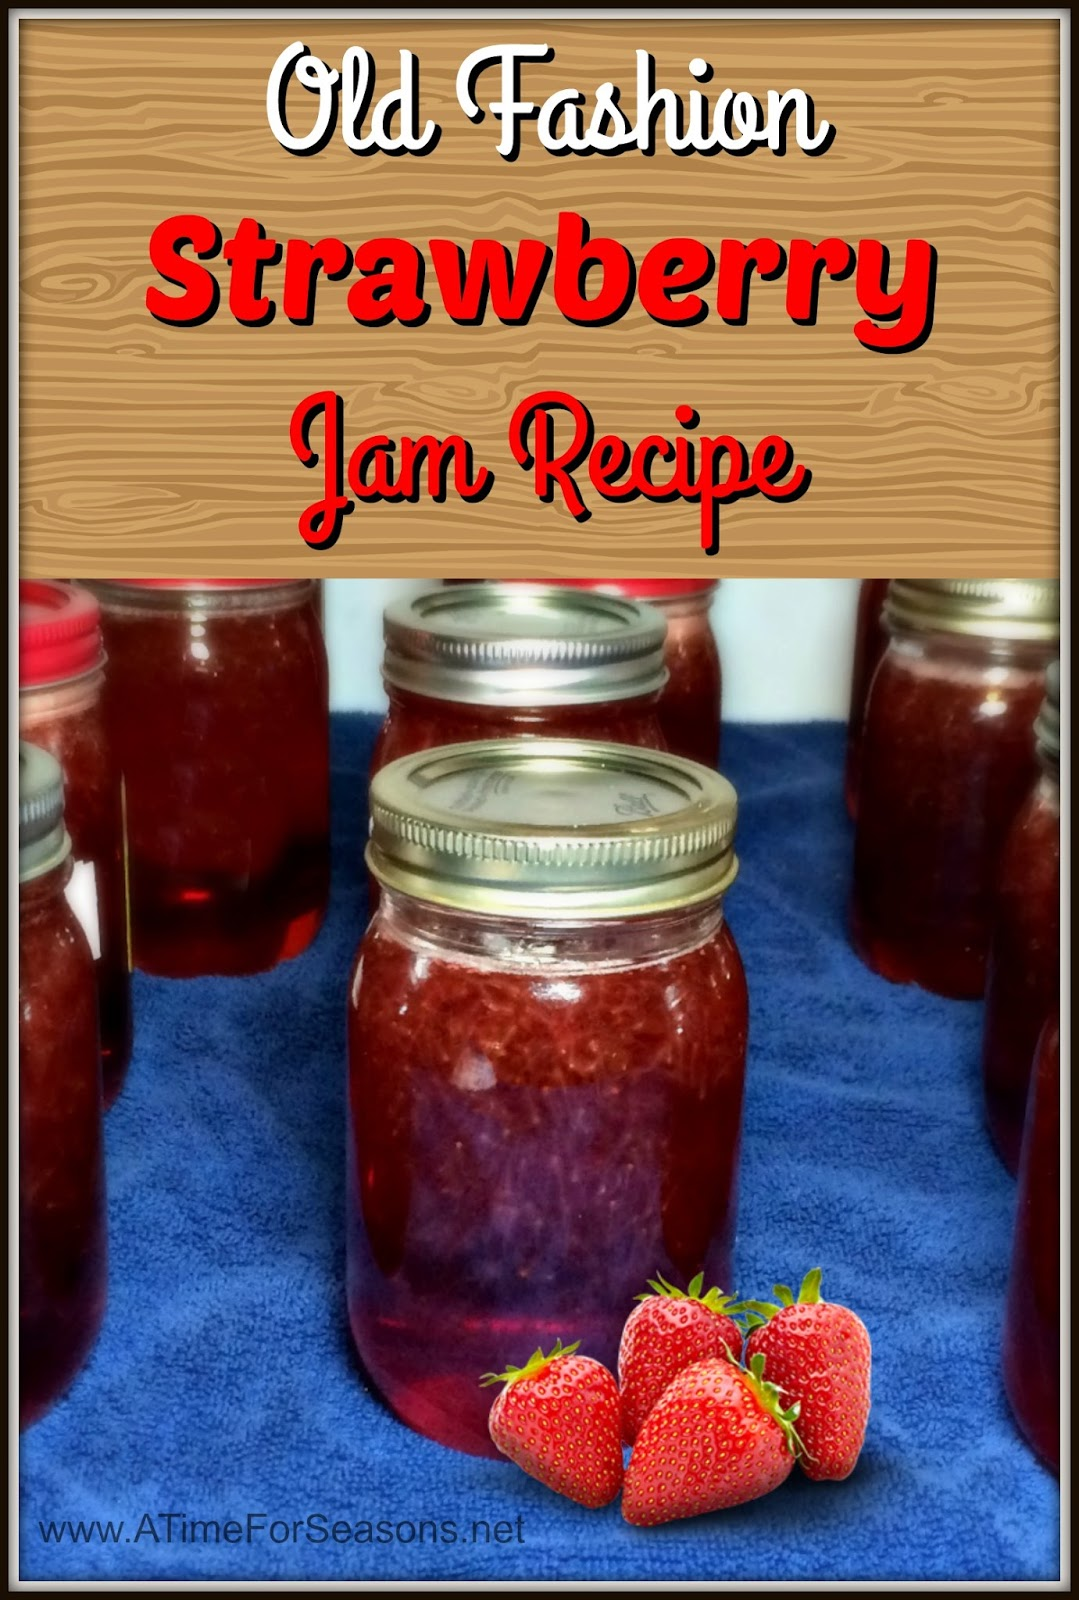 Old Fashion Strawberry Jam Recipe